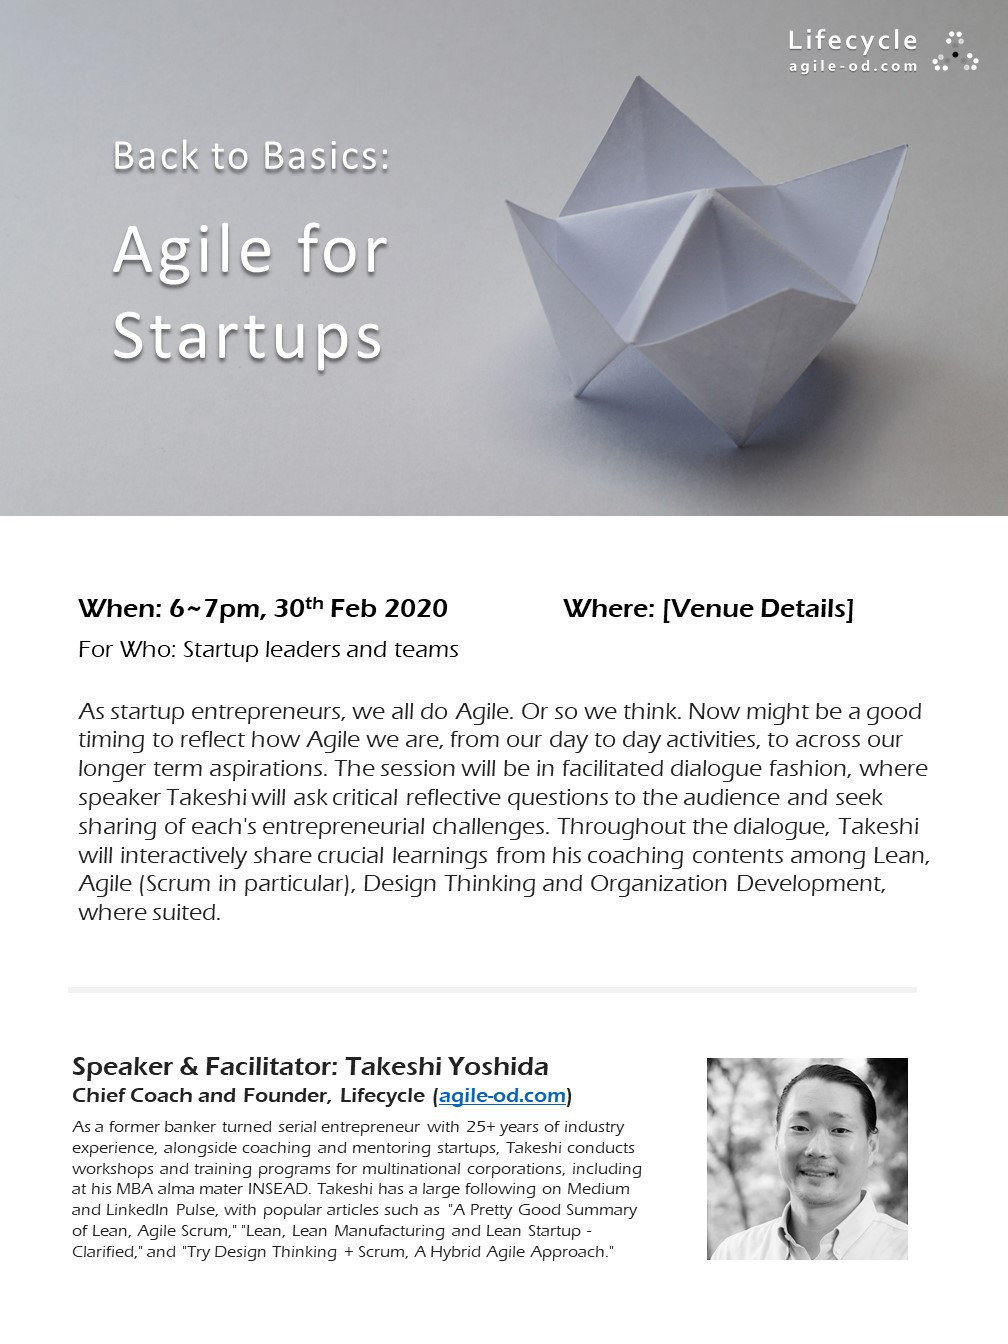 Agile for Startups - Takeshi Yoshida Lifecycle agile-od.com